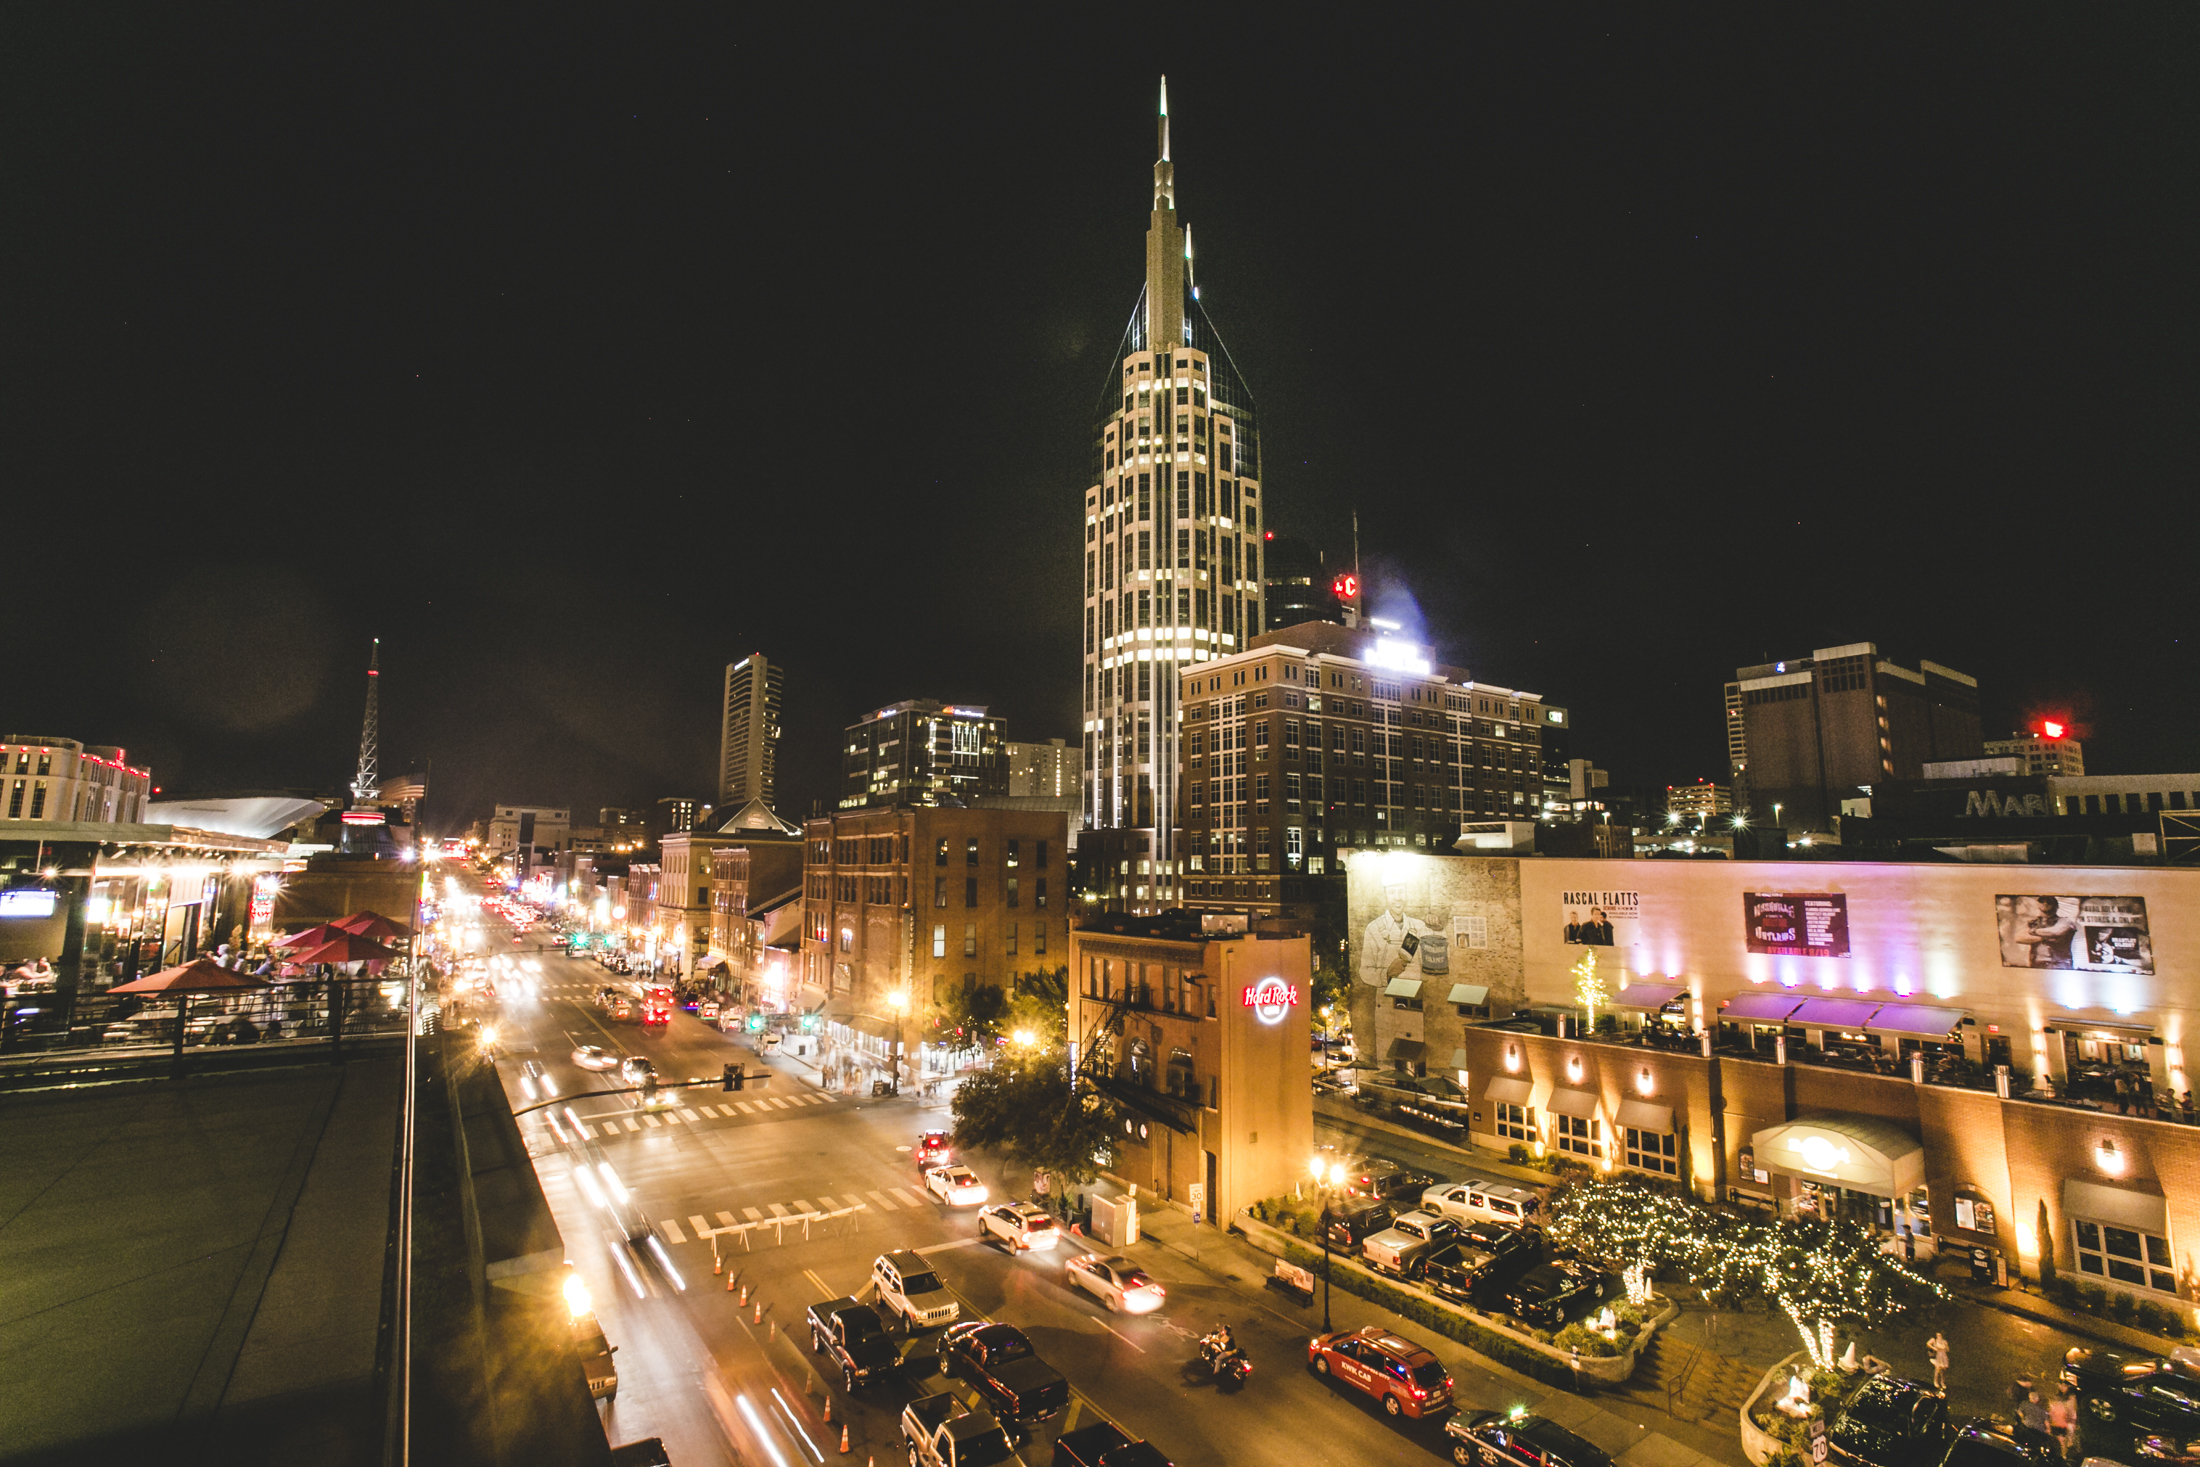 Nashville Rooftop - Acme Feed & Seed